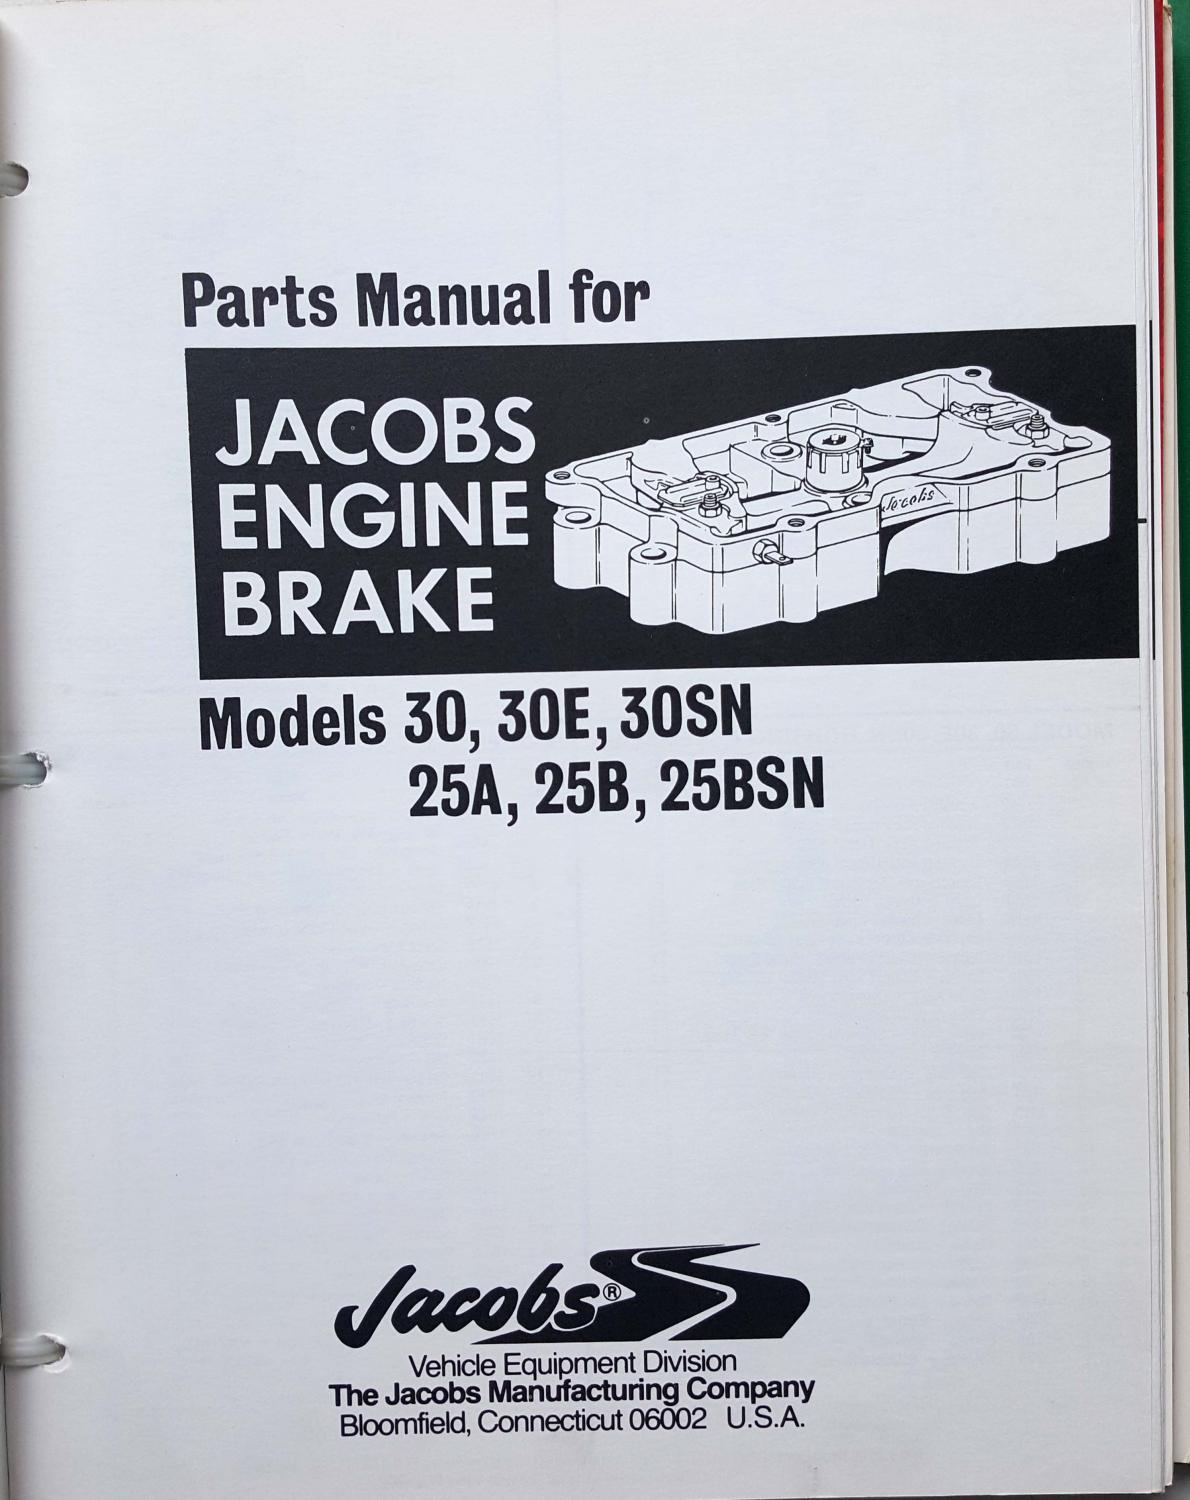 Jacobs Engine Brake Instruction and Parts